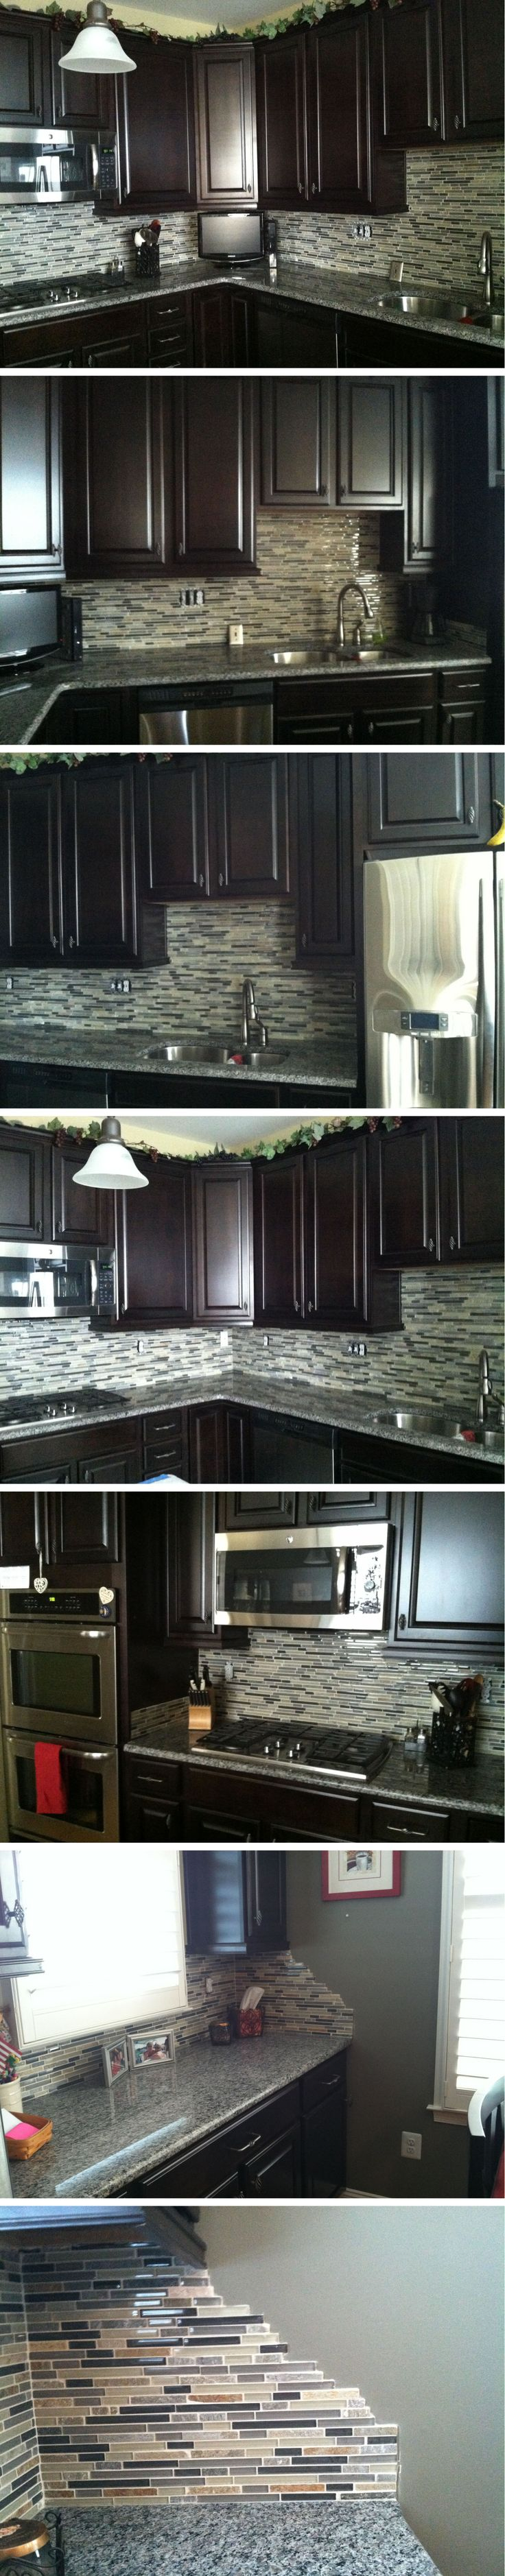 Glass stone mosaic kitchen backsplash photo marazzi pictures to pin on - Custom Kitchen Backsplash With A Glass Stone Mosaic Blend Bliss 5 8